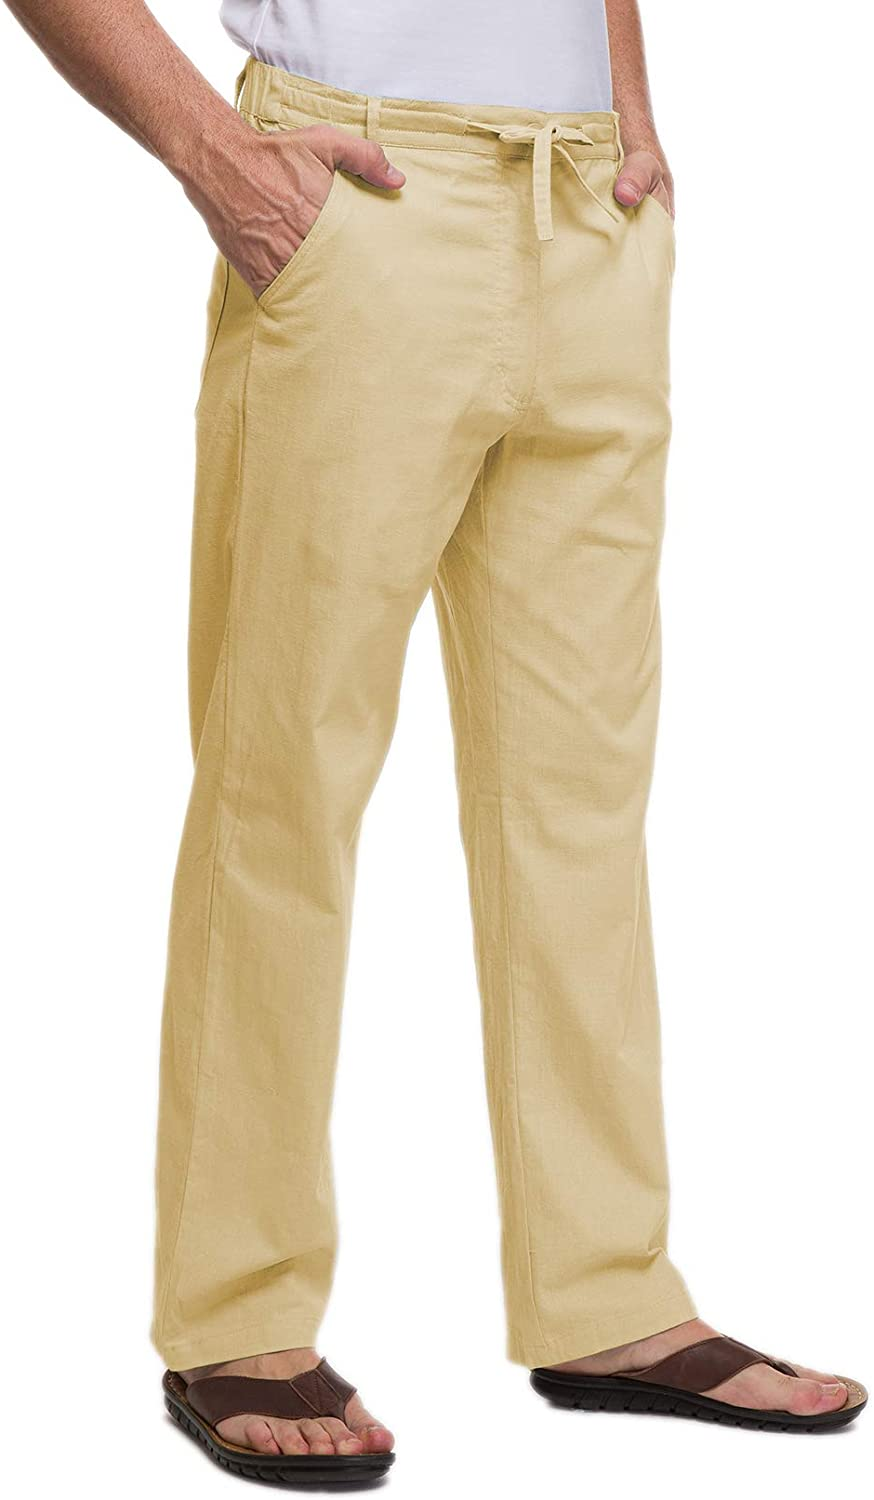 Janmid Men's 70% OFF Outlet Outstanding Linen Pants Casual Waist Elastic Yoga Be Drawstring